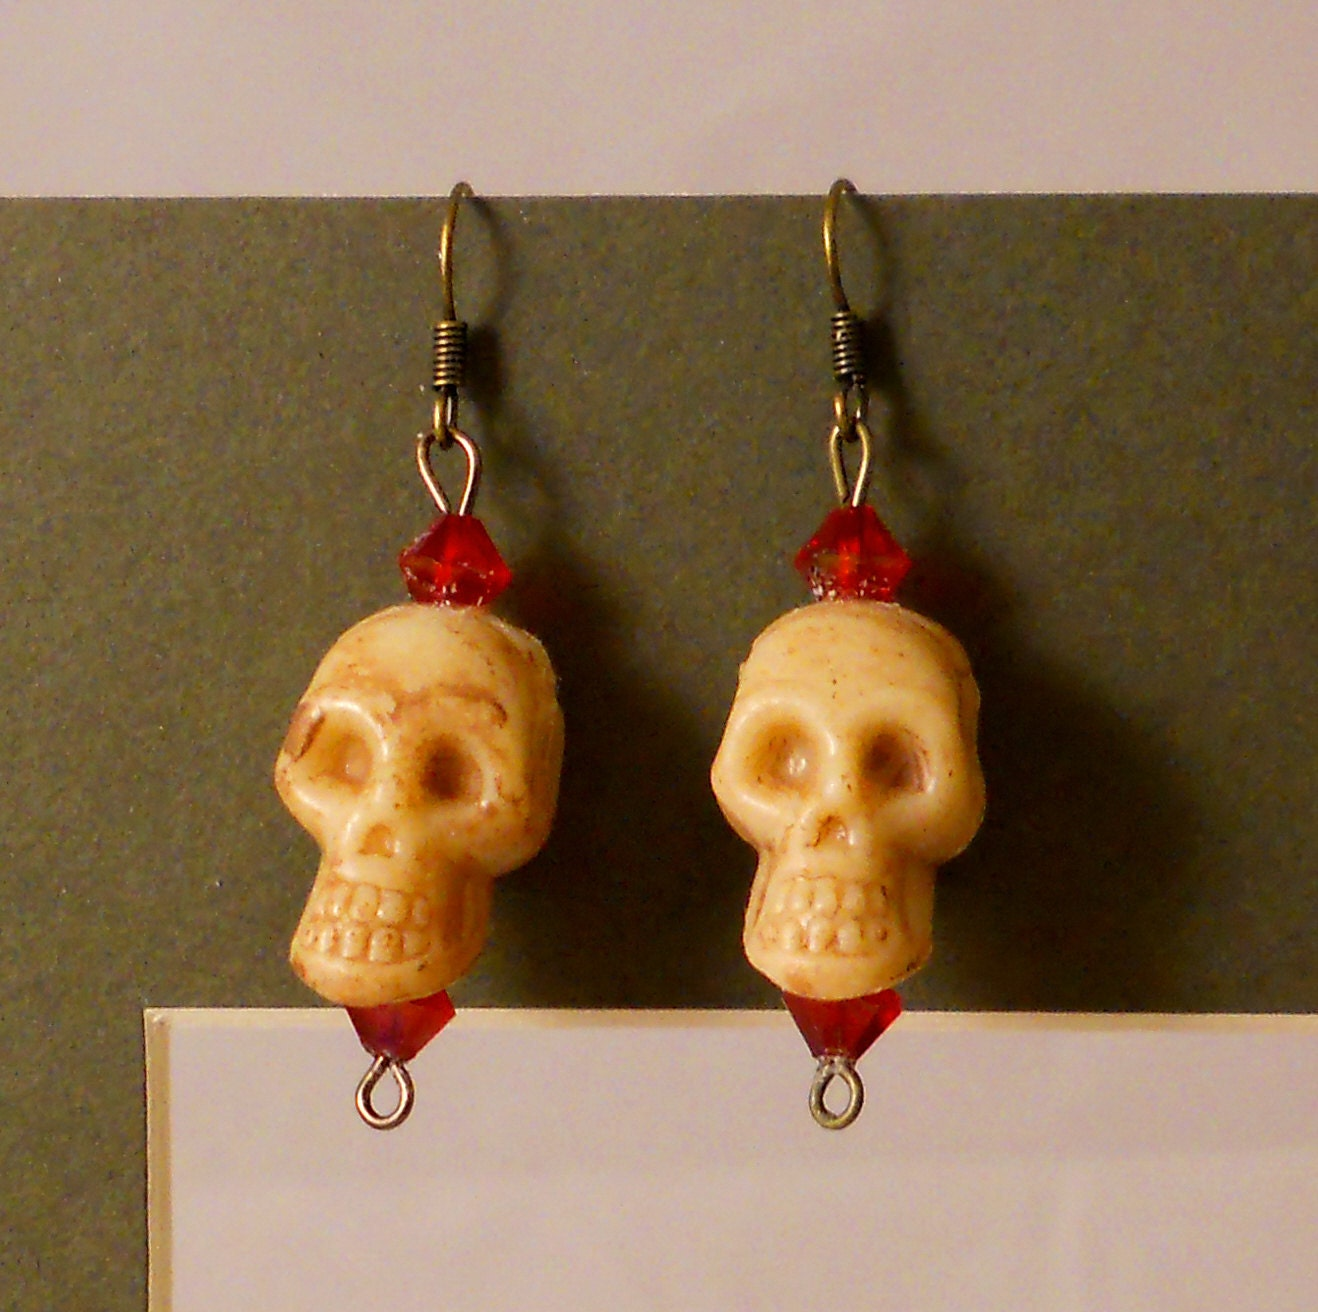 Blood Red SWAROVSKI Crystals and SKULLS Dangling Earrings -- 3D Halloween Gothic Jewelry Bones Beaded Steampunk